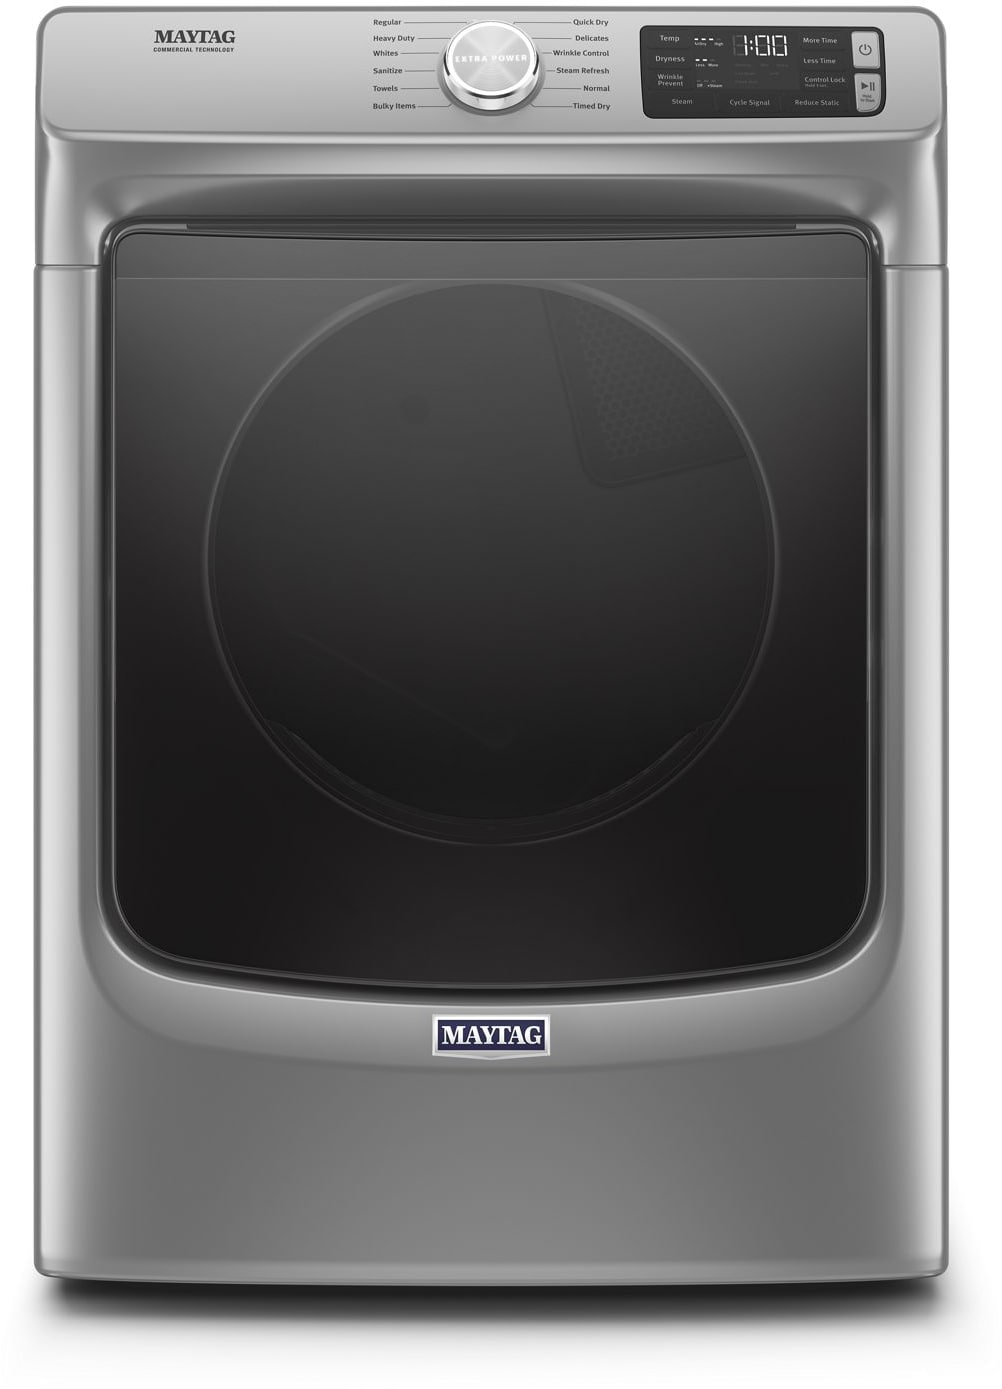 Maytag Mgd6630hc 27 Inch 7 3 Cu Ft Gas Dryer With 12 Dry Cycles 4 Temperature Settings Sanitize Cycle Quick Dry Cycle Extra Power Button Advanced Moisture Sensing And Energy Star Certified Metallic Slate